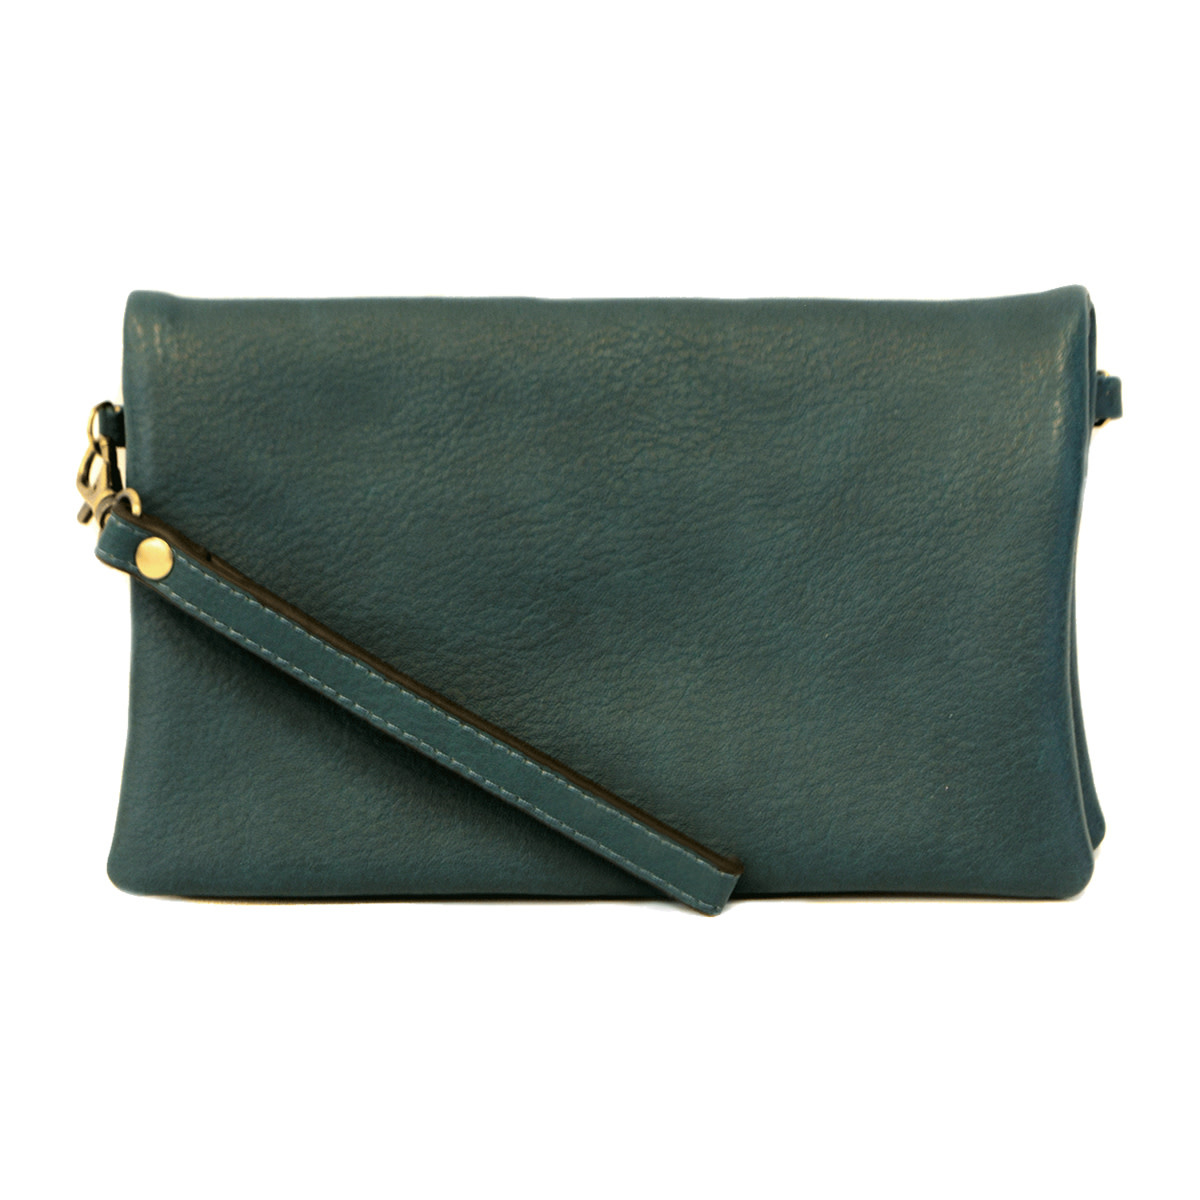 Joy Susan Joy Susan Kate Crossbody Handbag Dark Teal